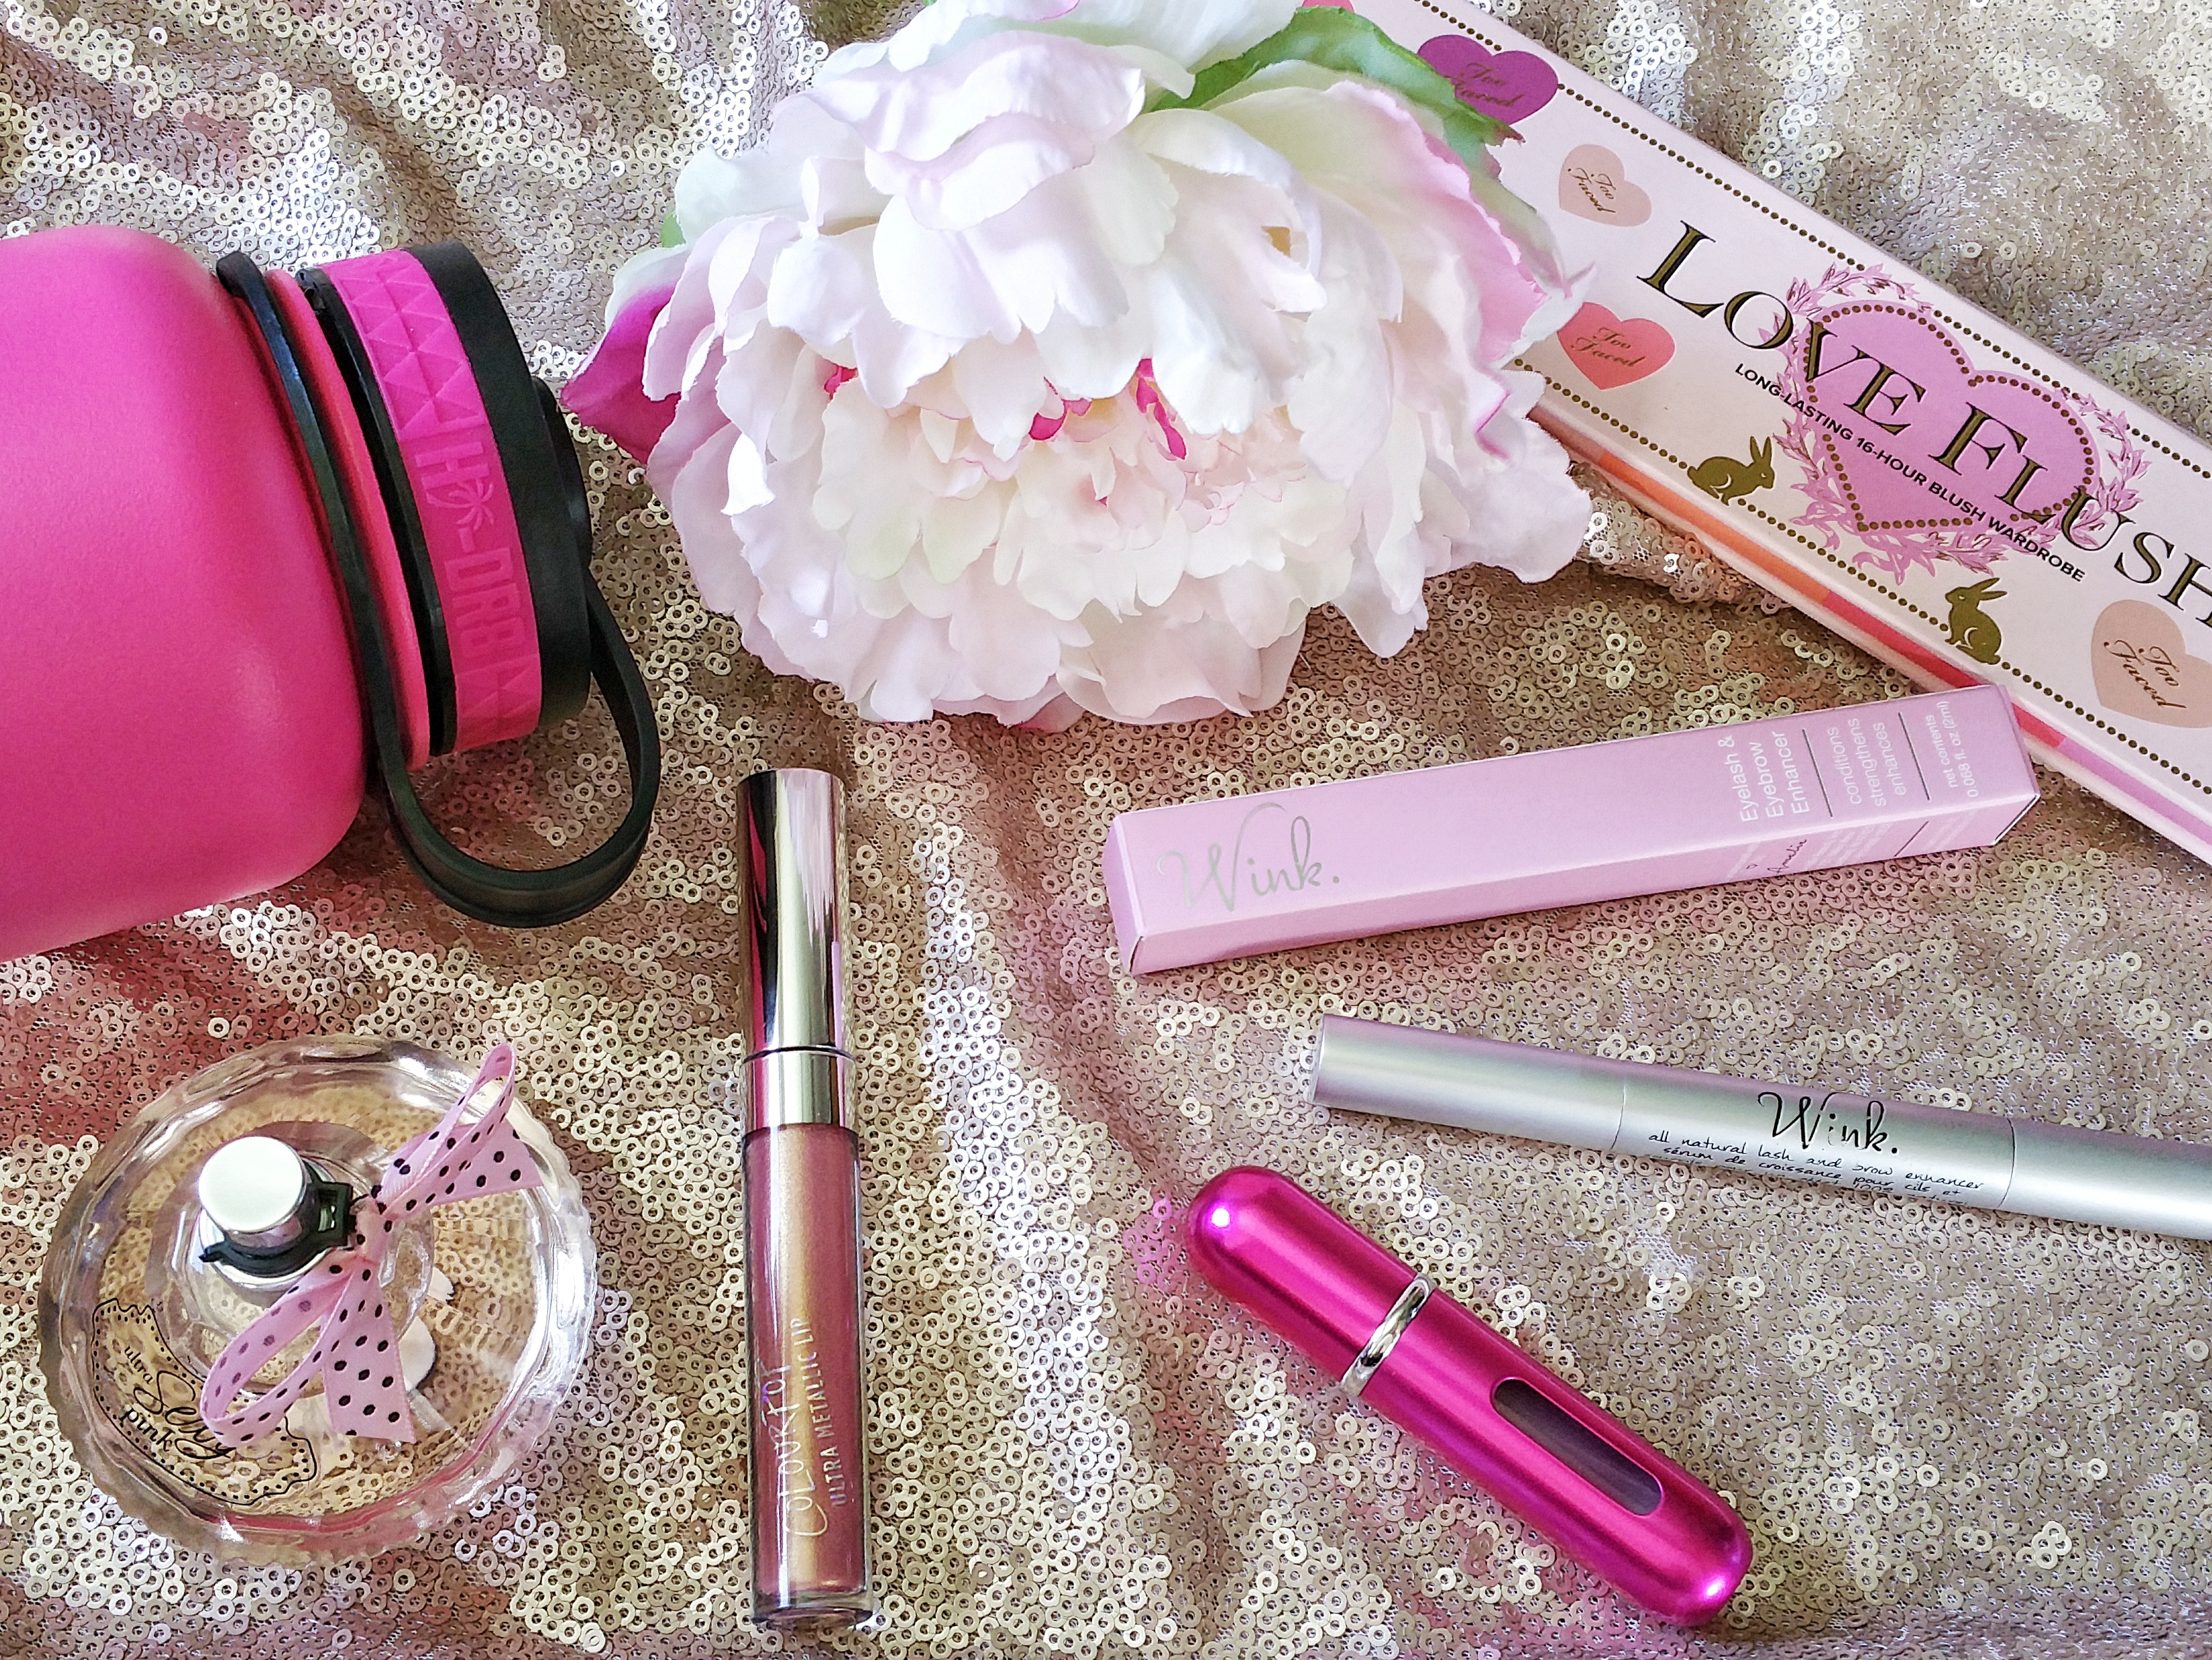 Amalie, WINK, lash and brow serum, lash growth serum, breast cancer awareness, breast cancer, go pink, amalie beauty, review, feature, beauty, makeup, longer lashes, beauty, lashes,